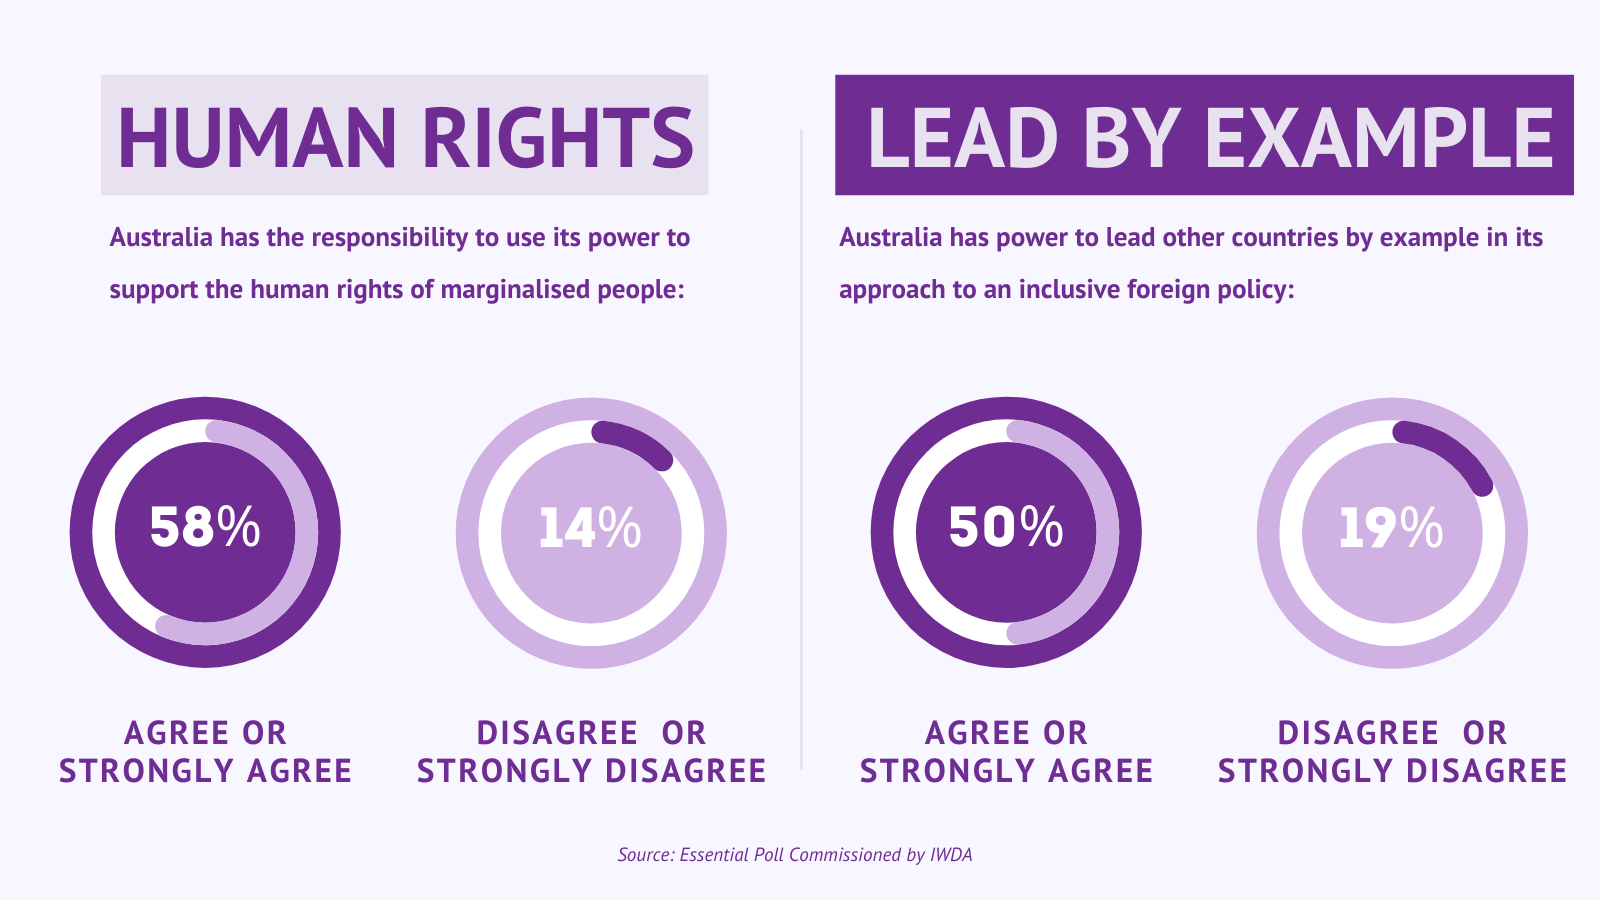 An infographic with data results from a survey about Australia's foreign policy